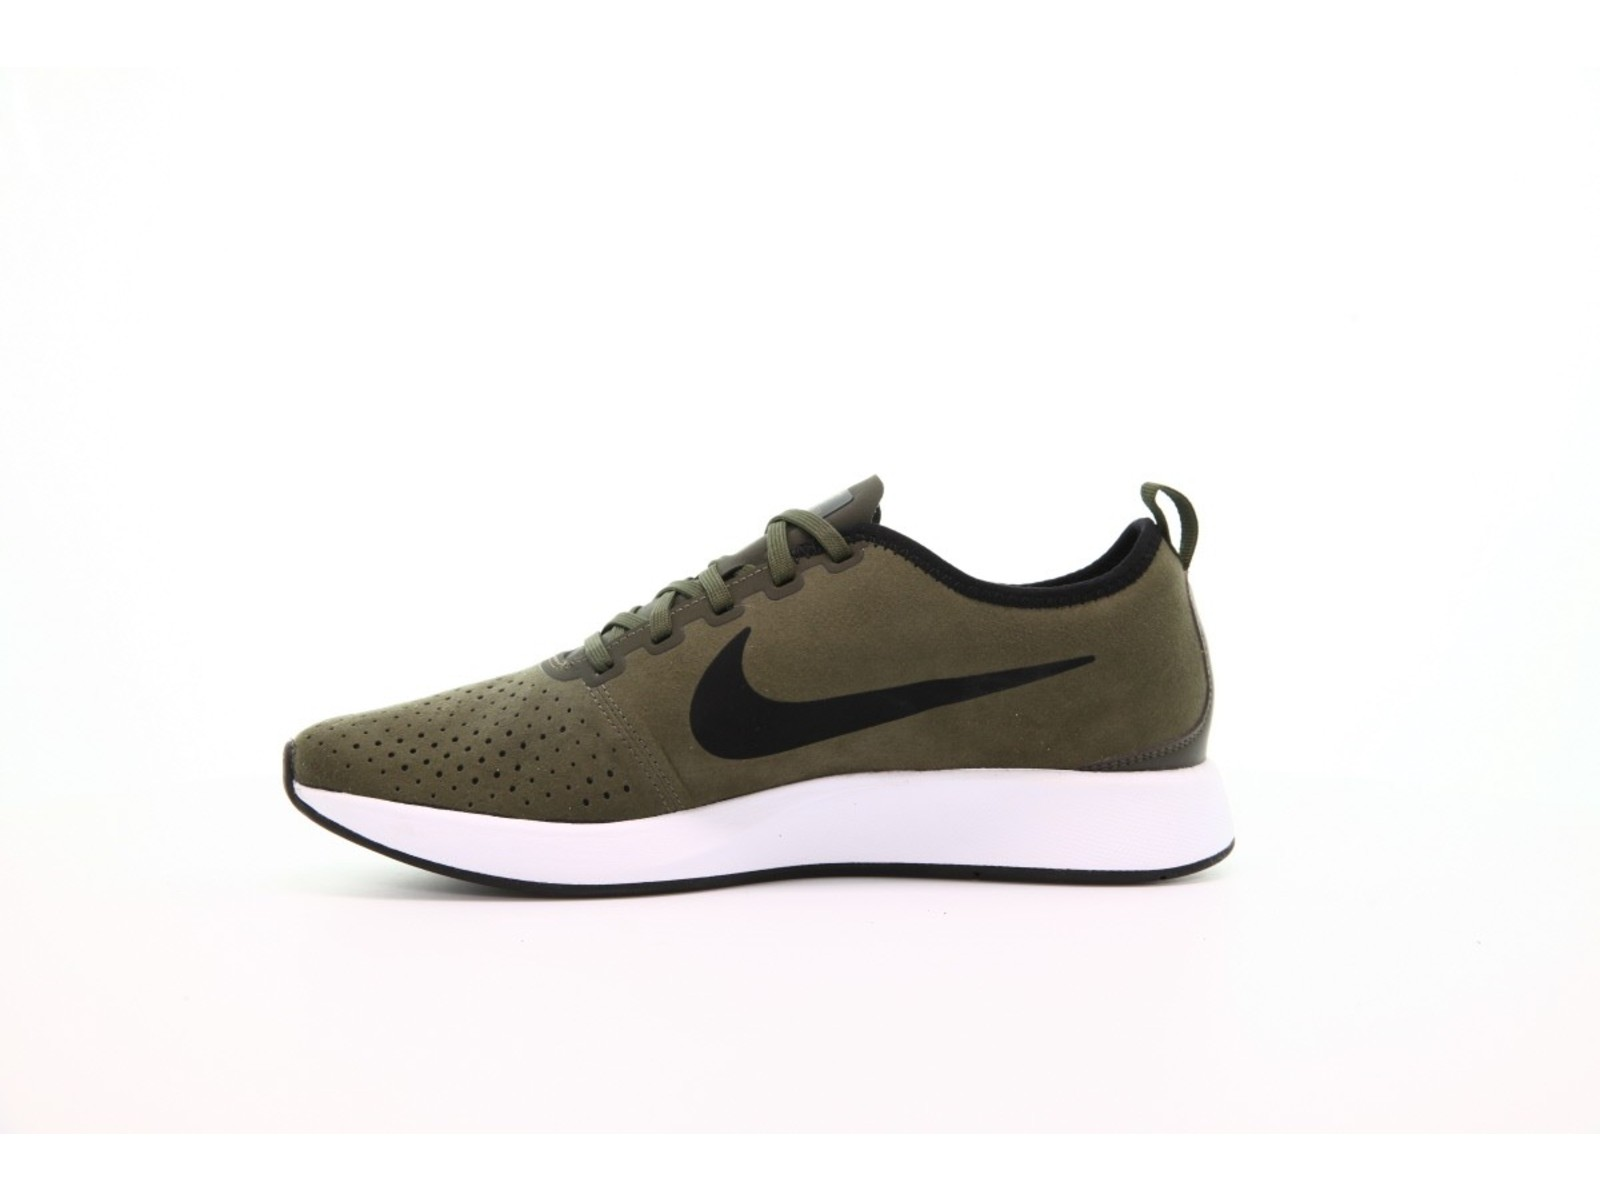 92a15826d34a Nike Mens Dualtone Racer PRM Leather Low Top Lace Up Running